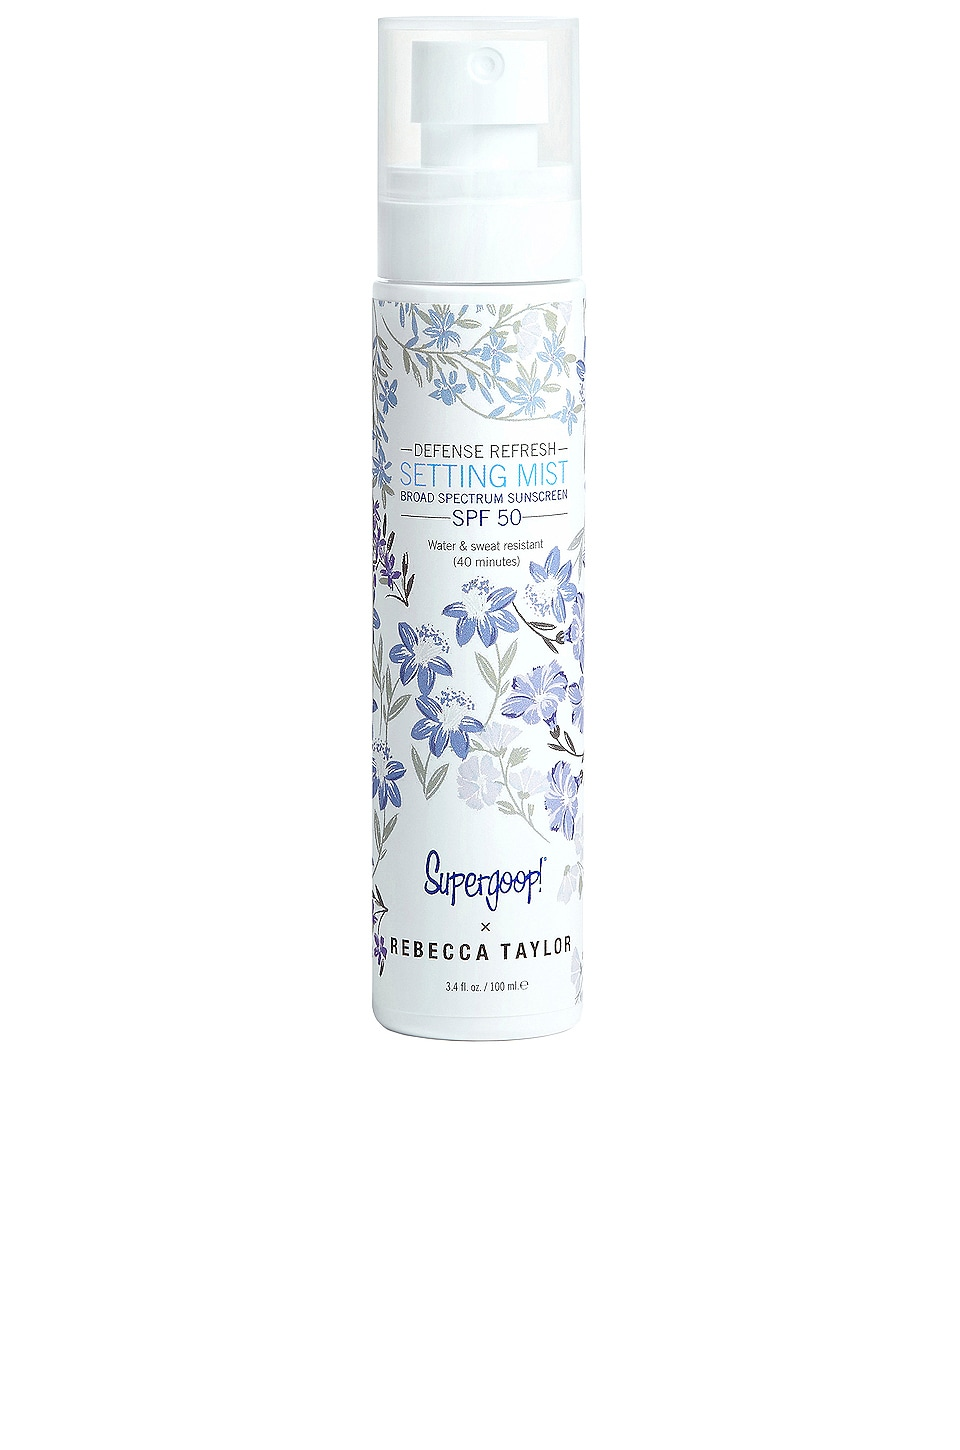 Supergoop! x Rebecca Taylor Defense Refresh Setting Mist SPF 50 3.4 fl oz